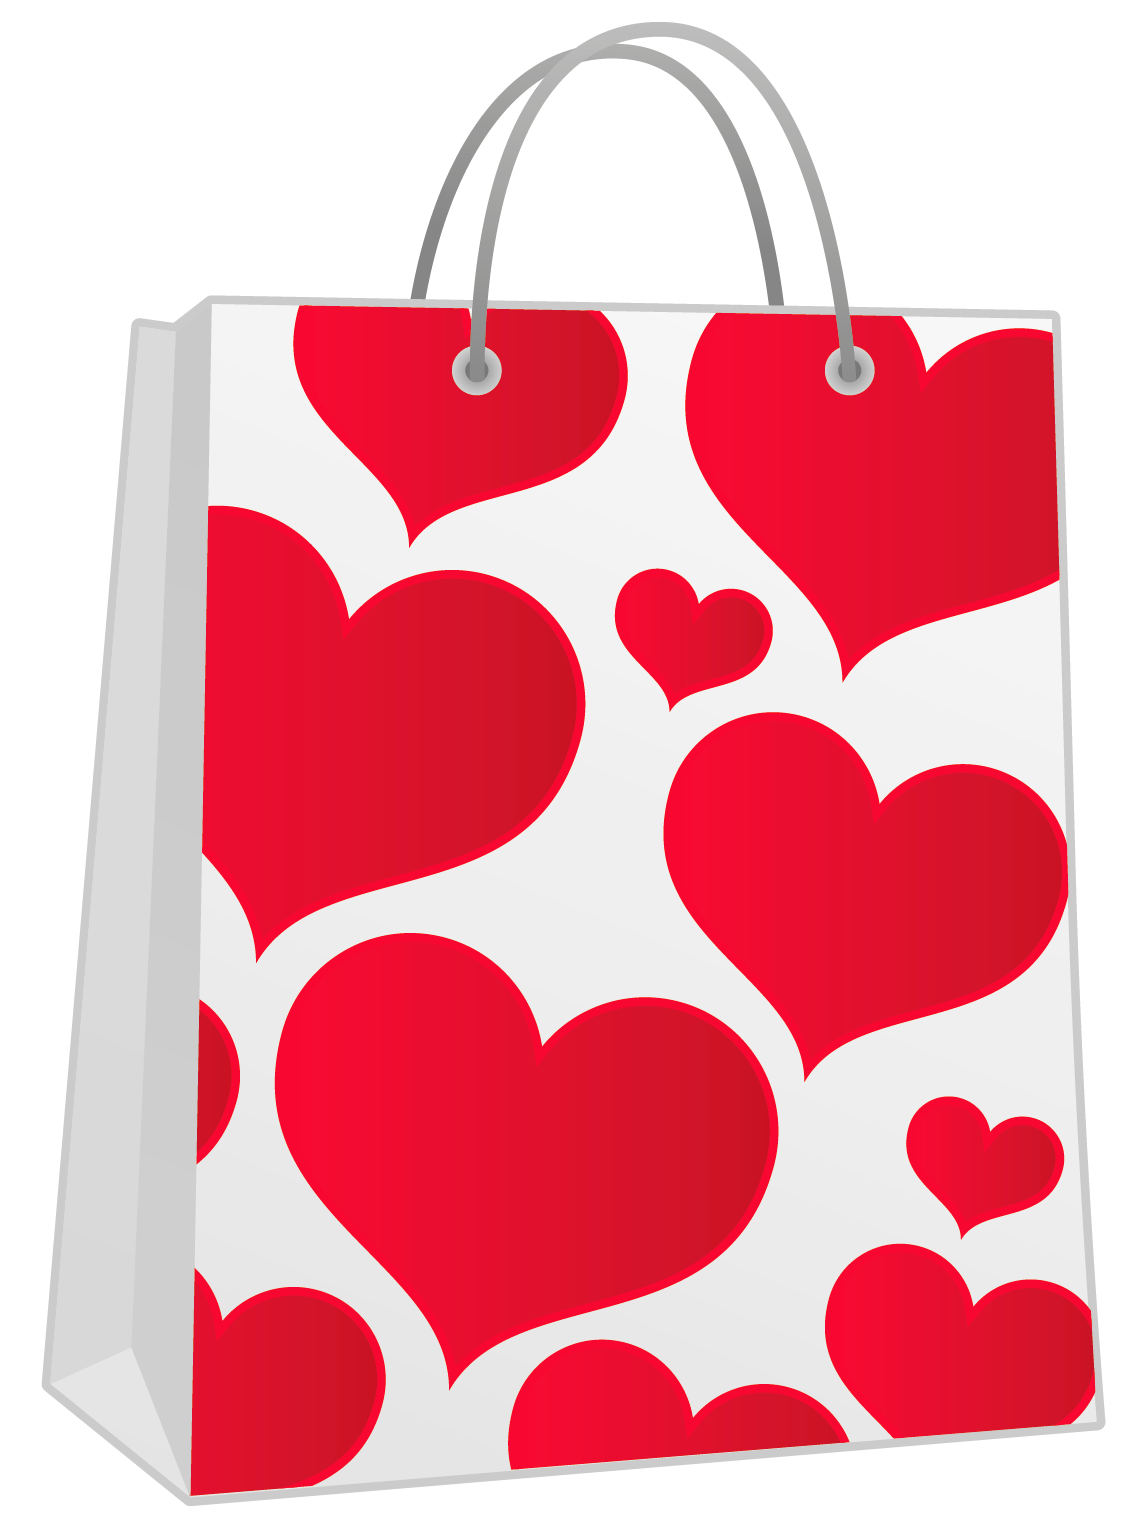 Valentine Red Gift Bag with Hearts PNG Clipart.